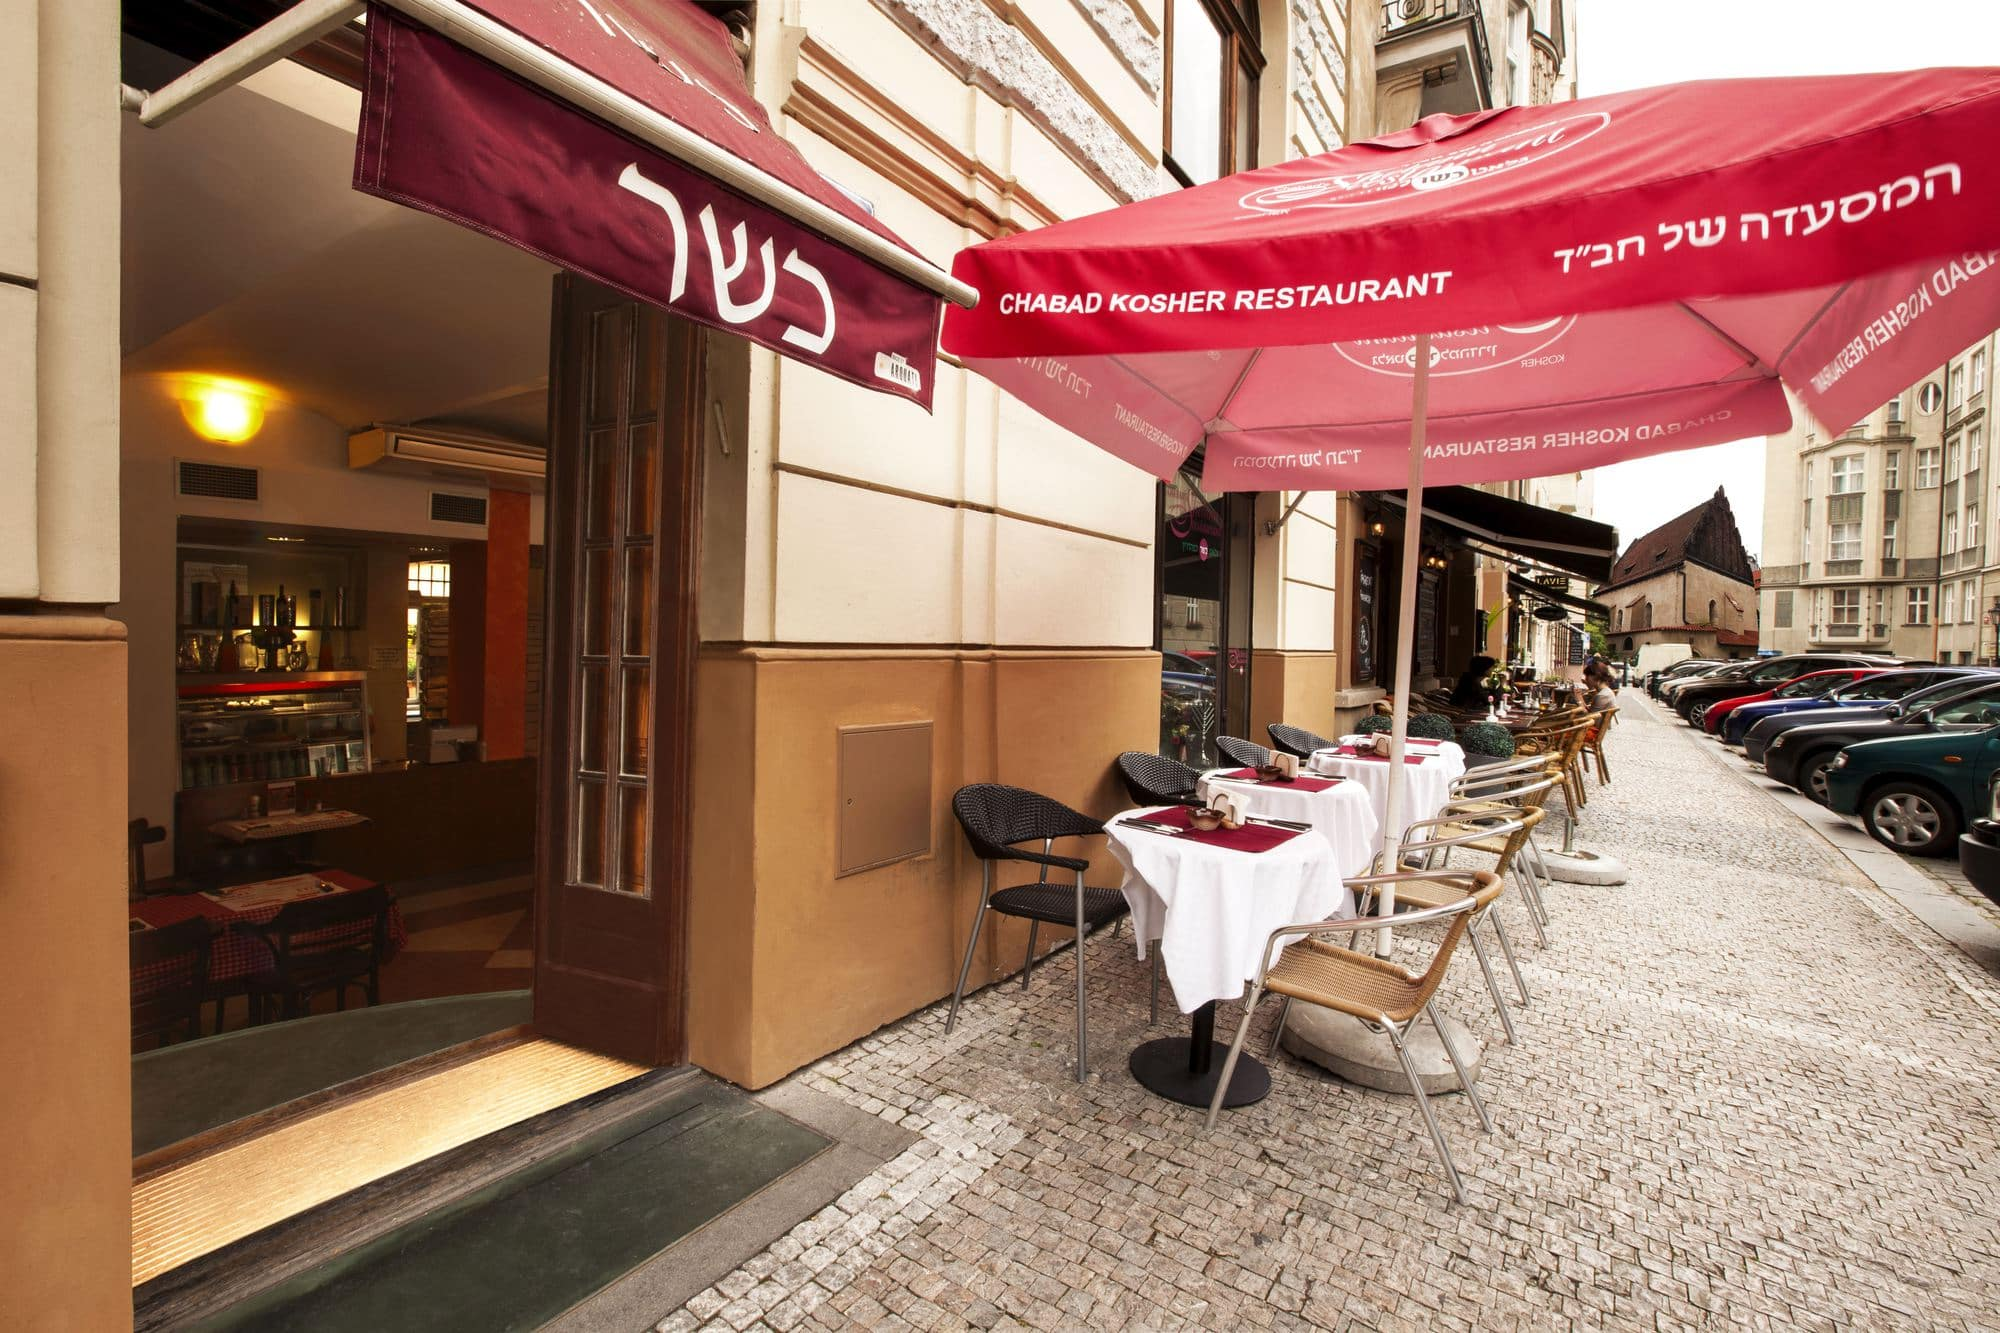 Shelanu-Pizzerie-Prague-3.jpg